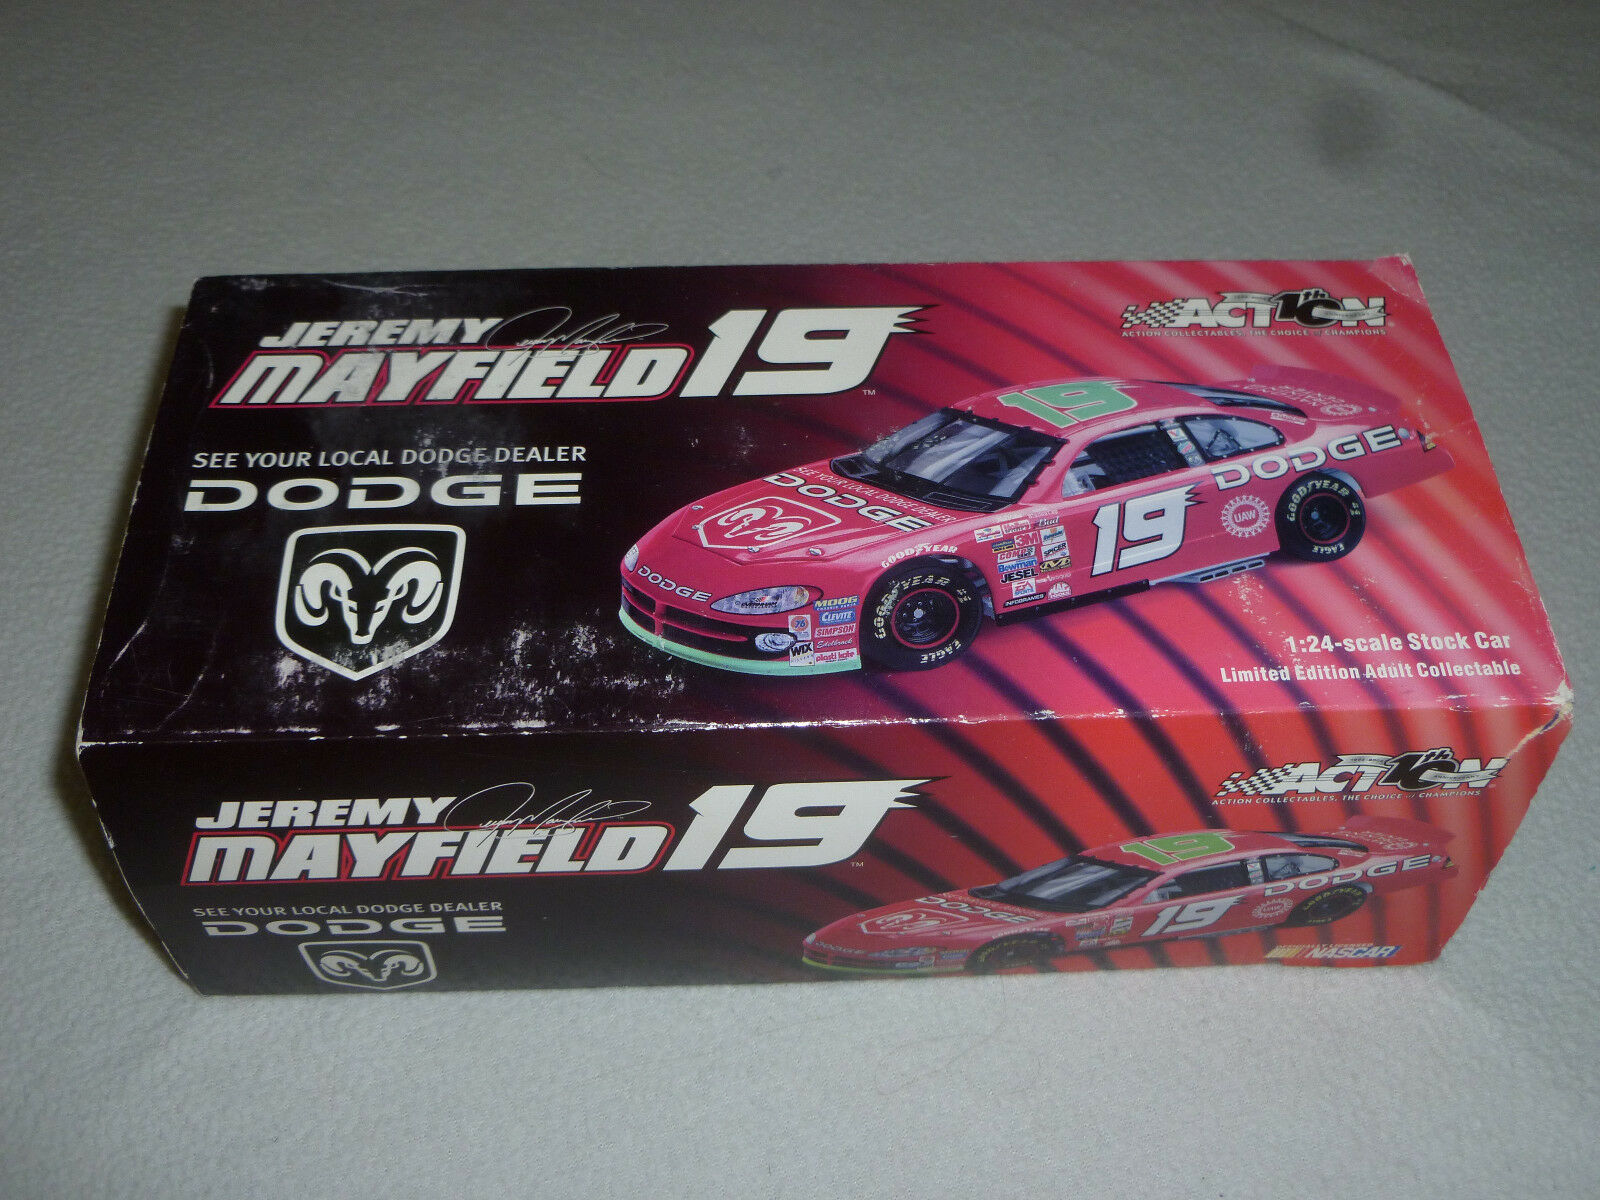 NEW NEW NEW IN BOX ACTION CAR JEREMY MAYFIELD 19 DODGE 2002 INTREPID MAC TOOLS 102526 9d3398